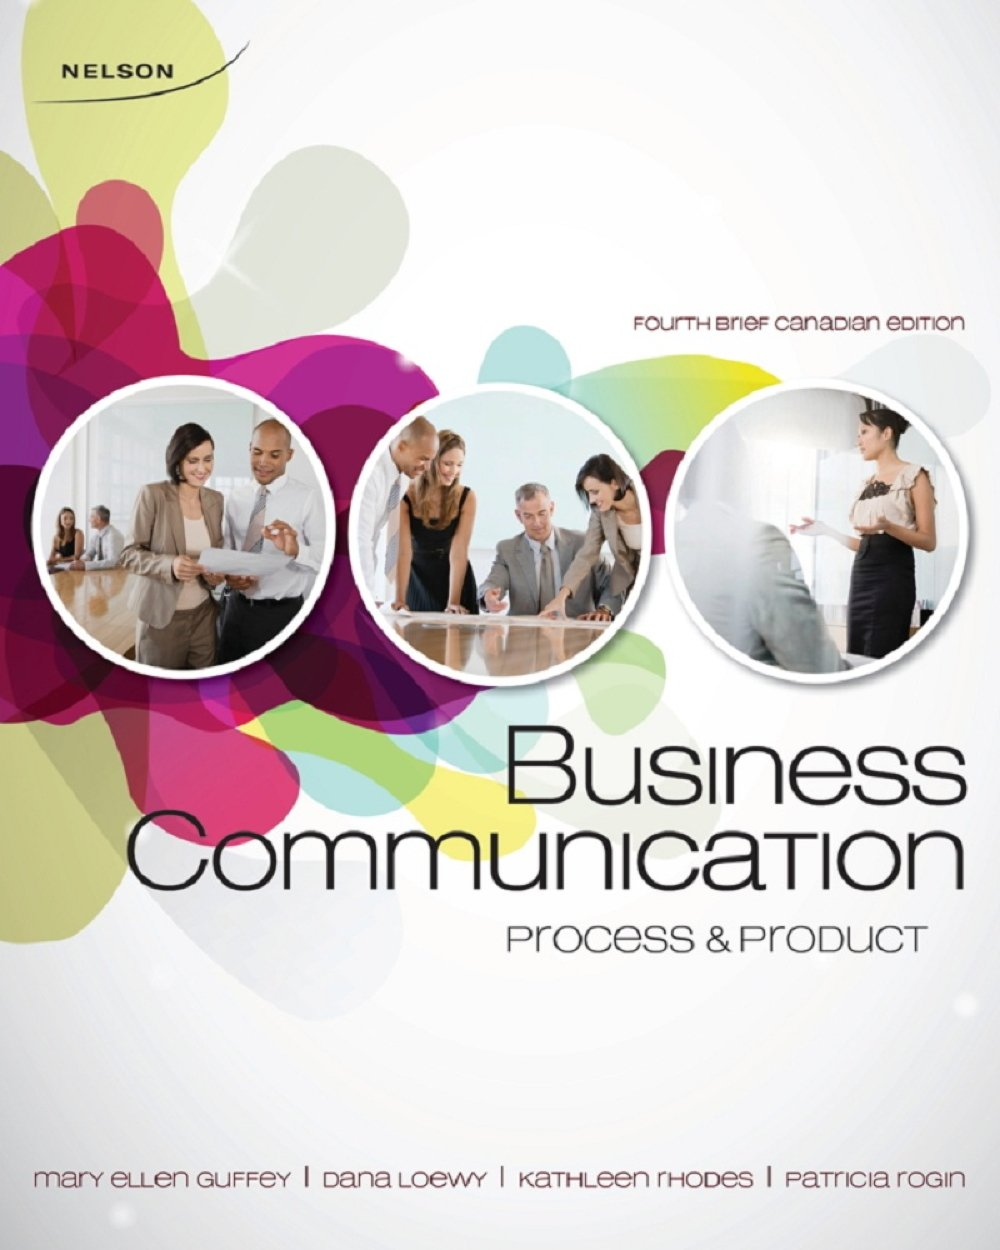 Business Communication Process Business Communication